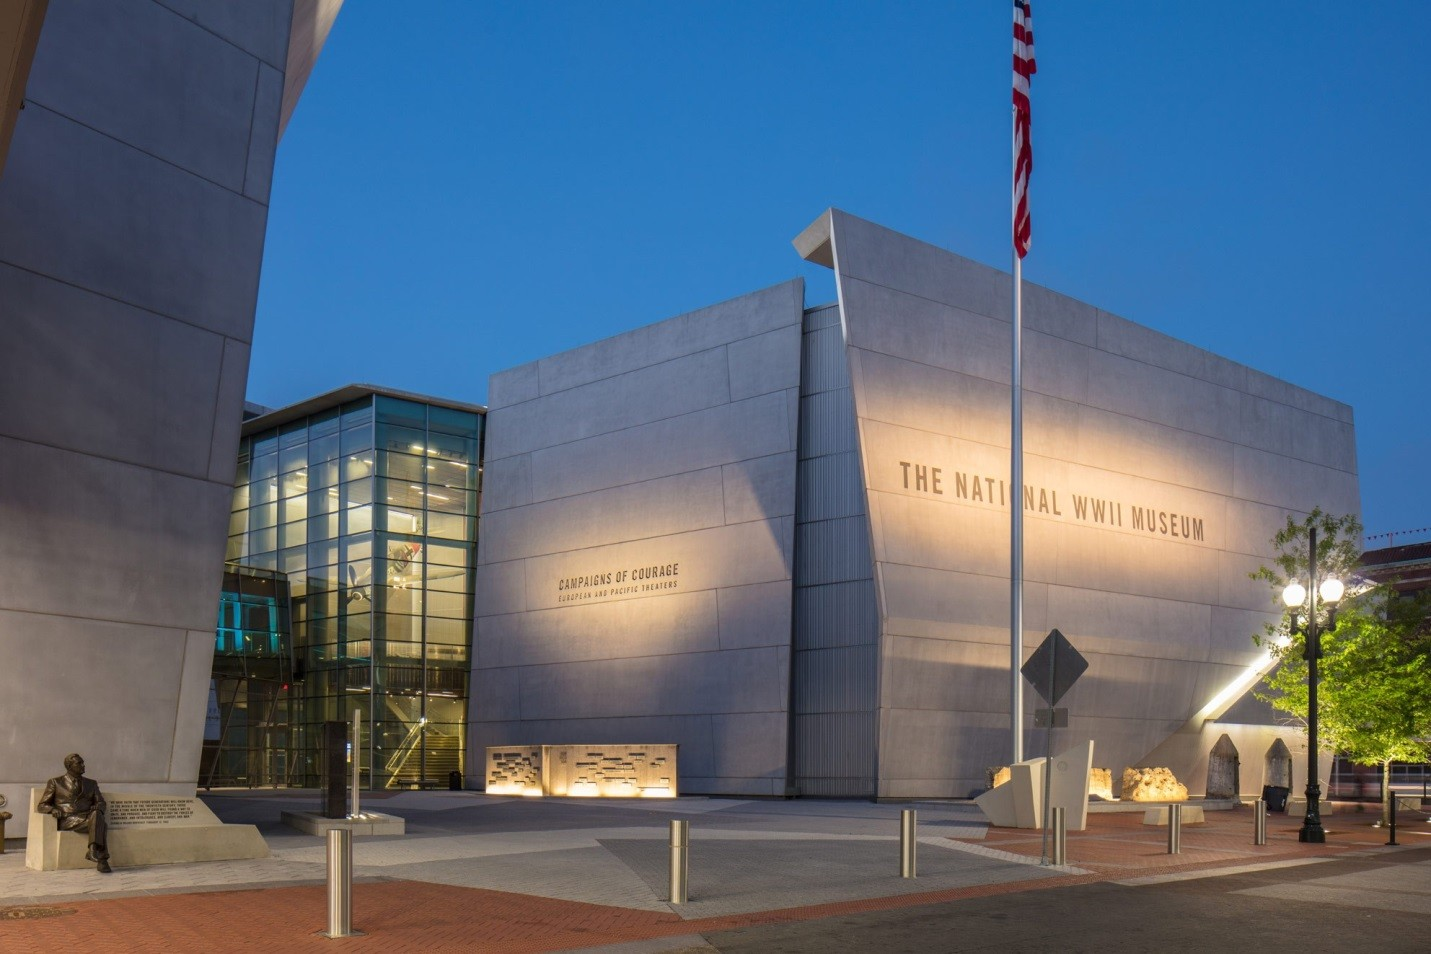 According to the survey, some of the museum workers will not return to work after the pandemic